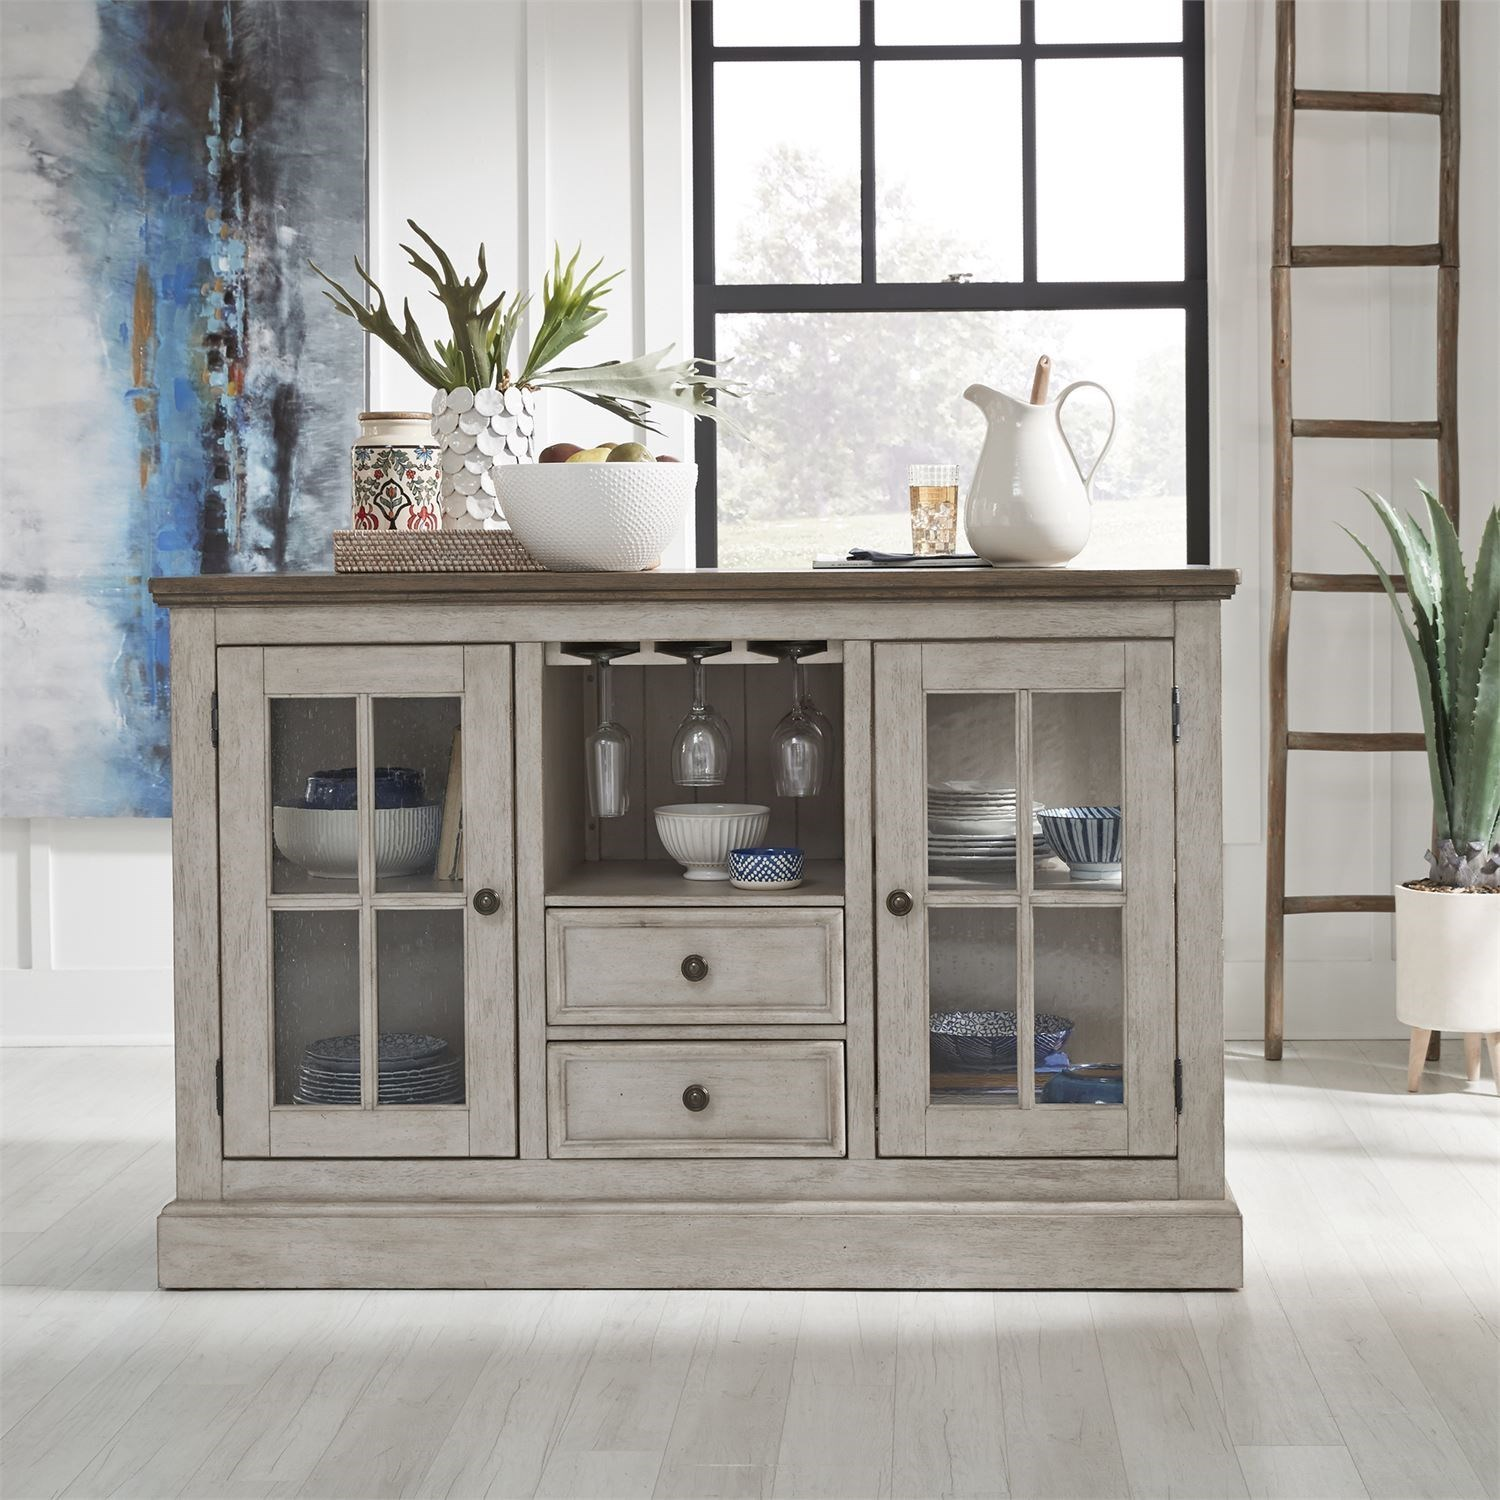 Heartland Kitchen Island by Liberty Furniture at Upper Room Home Furnishings